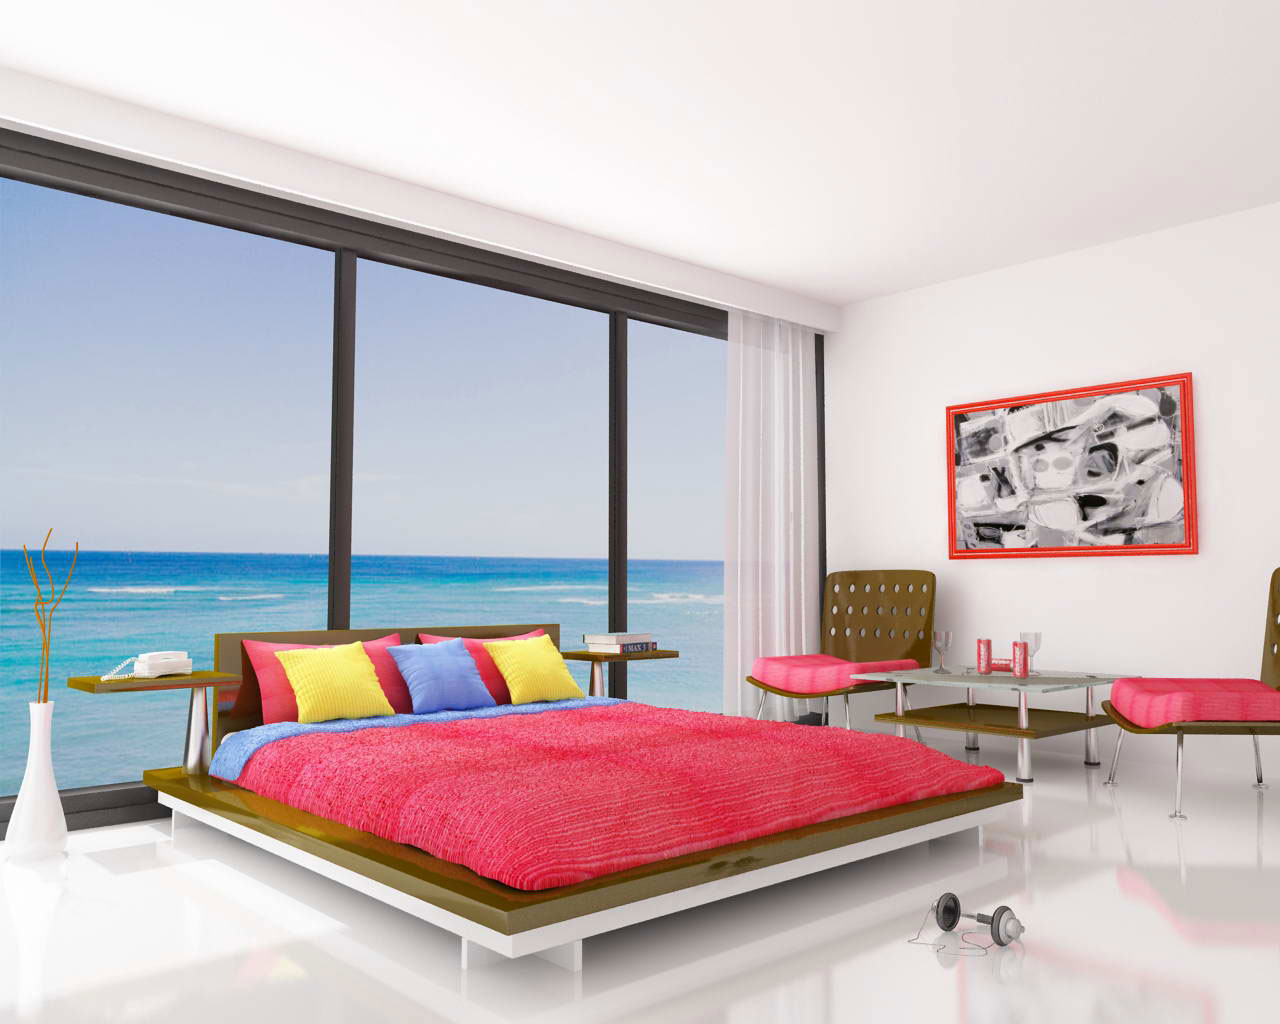 Enjoyable Colorful Bedroom For Unique Room Coloring: New Exclusive Bedroom Design Big Glass Window